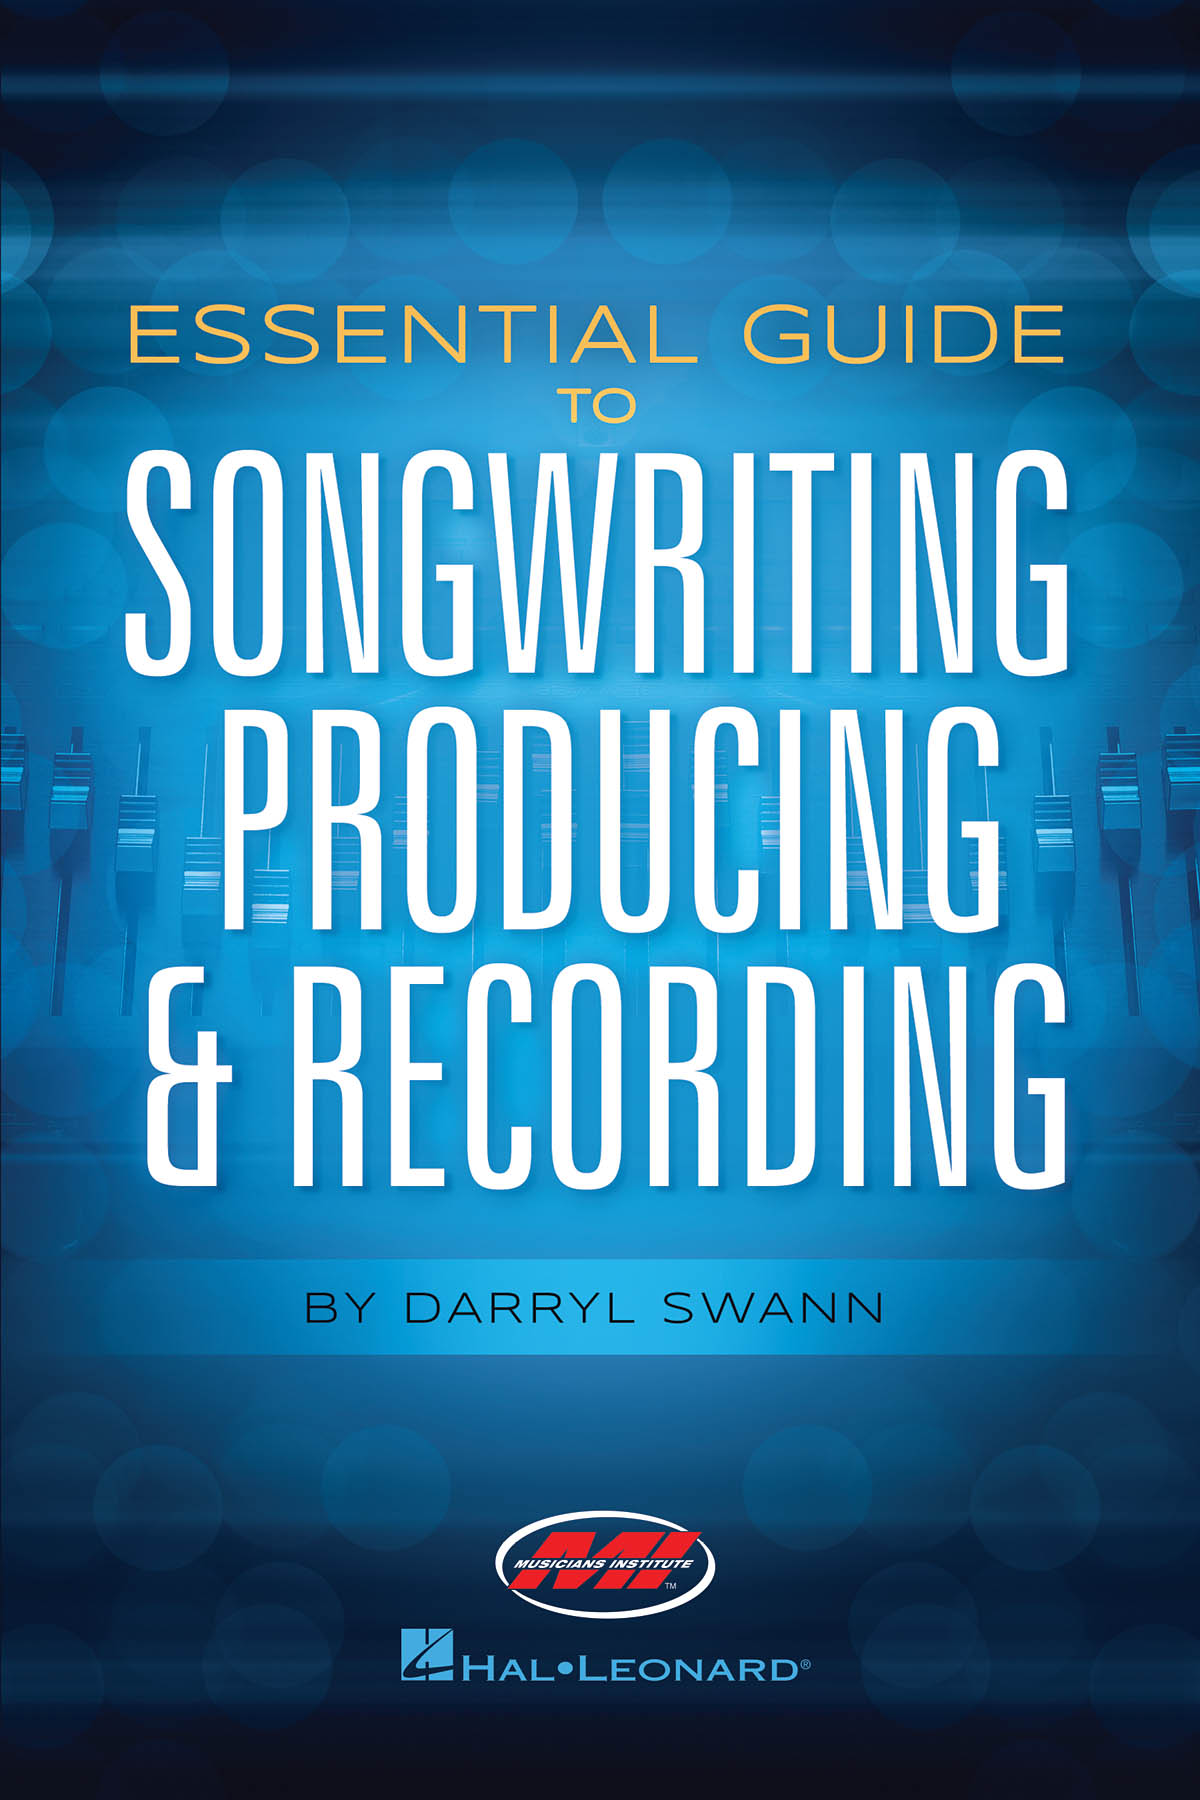 Darryl Swann: Essential Guide to Songwriting  Producing & Record: Reference